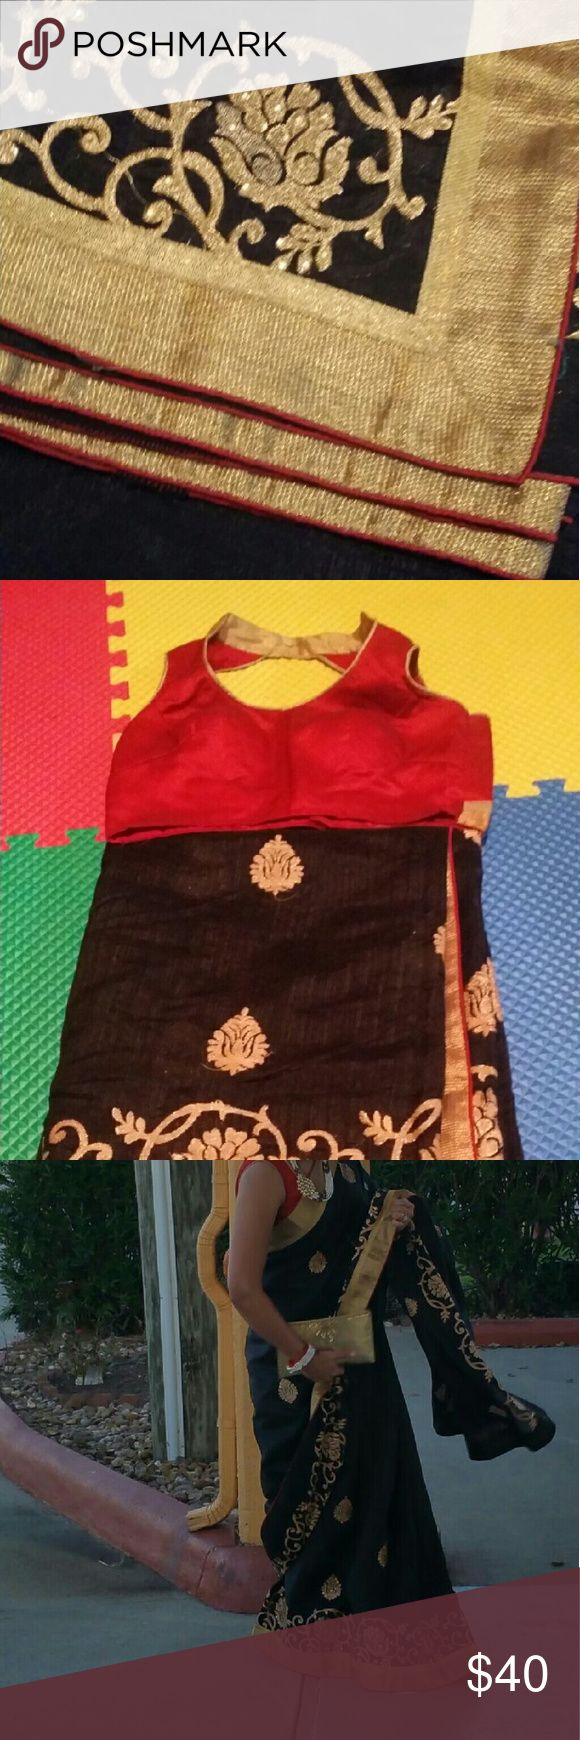 """Silk sari Black with gold border and red  blouse .1 time wear no damage. Dry clean already.30""""wide Other"""